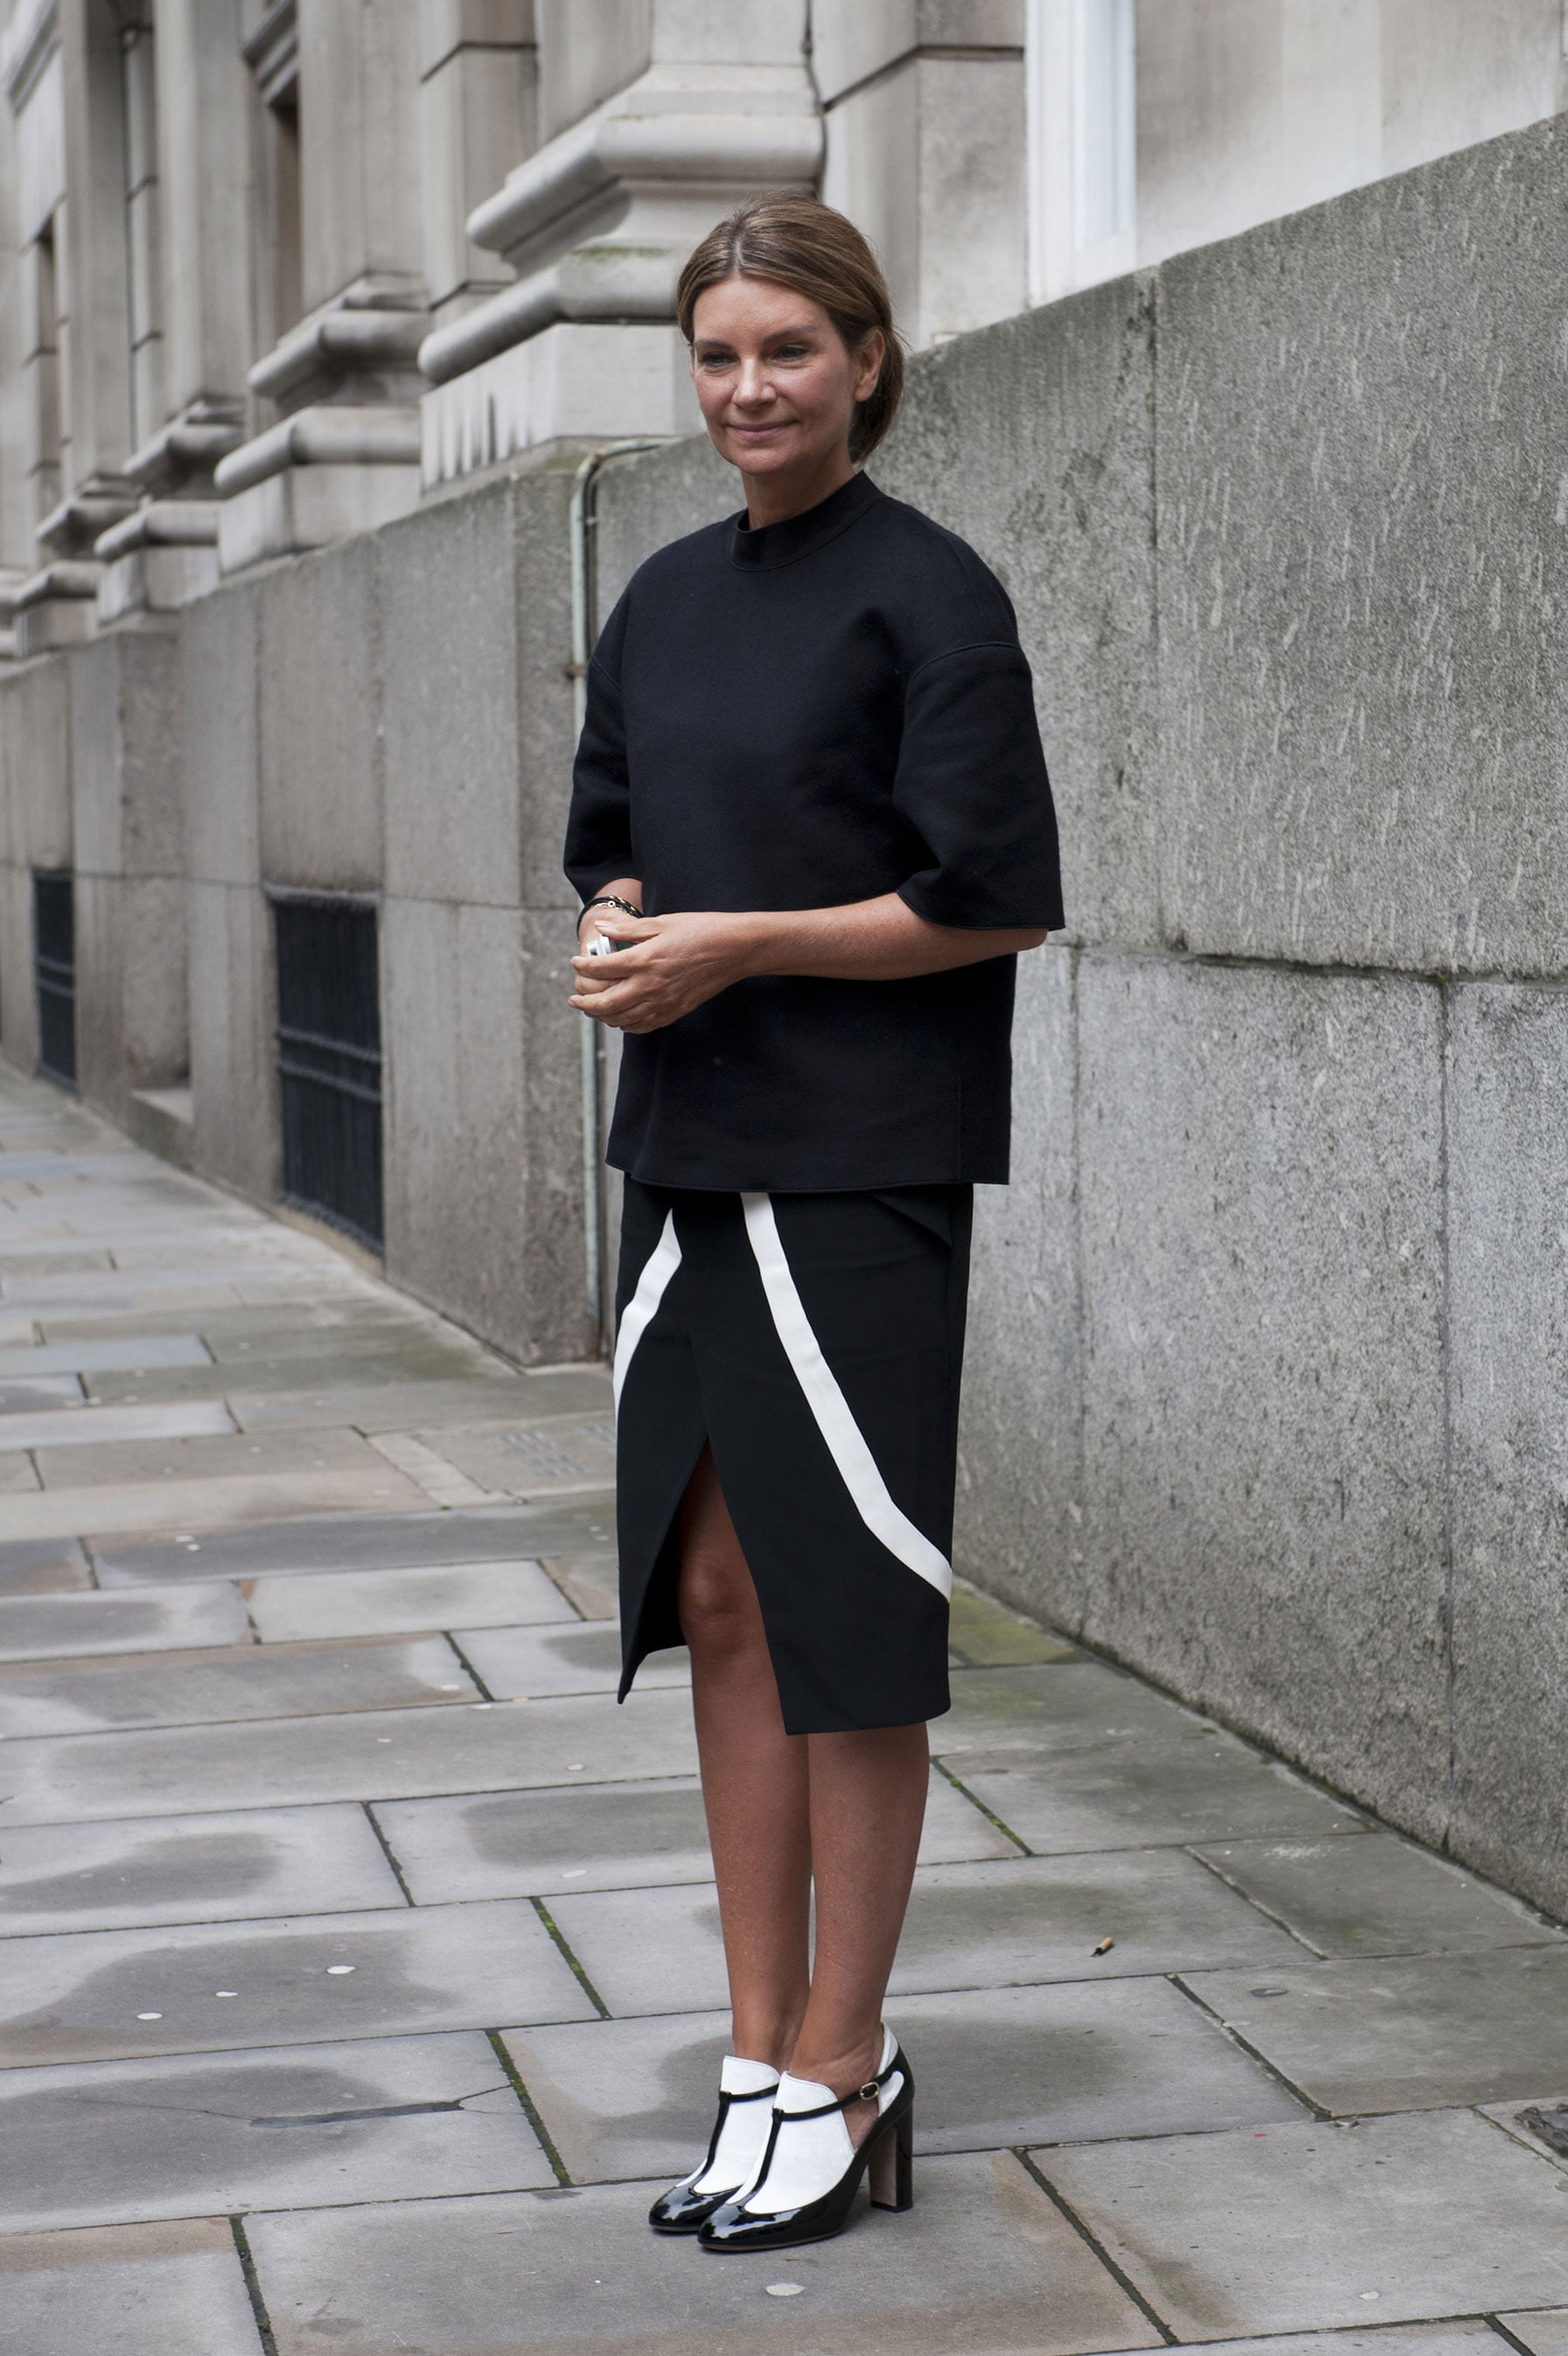 She fully committed to the black and white palette, right down to her Valentino heels.